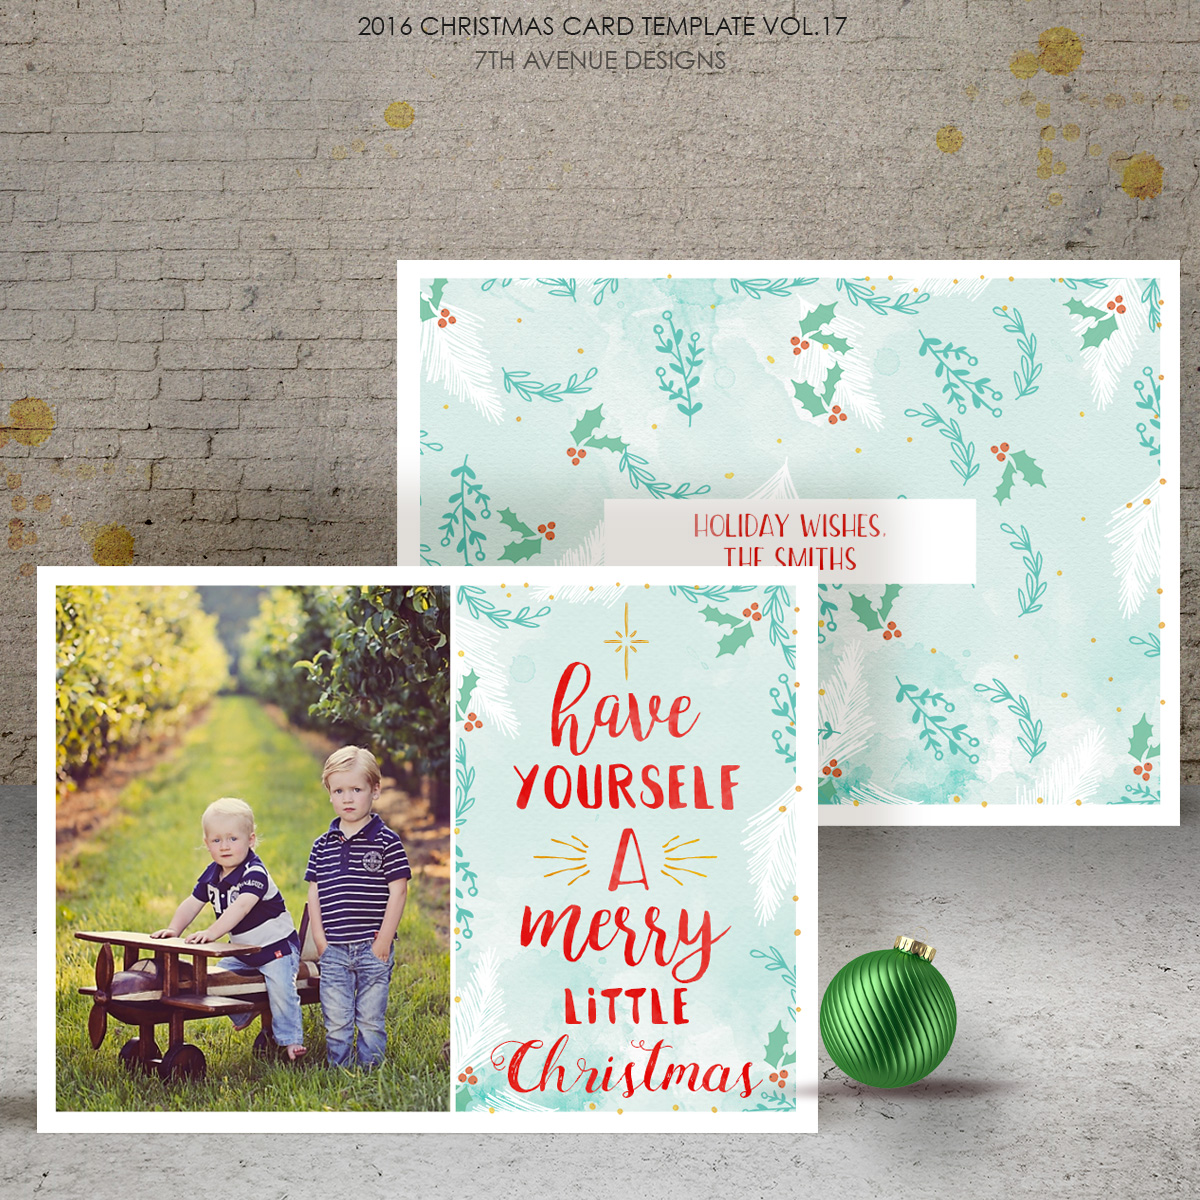 2016 Christmas Card Templates vol.17 -- 7x5 inch card template